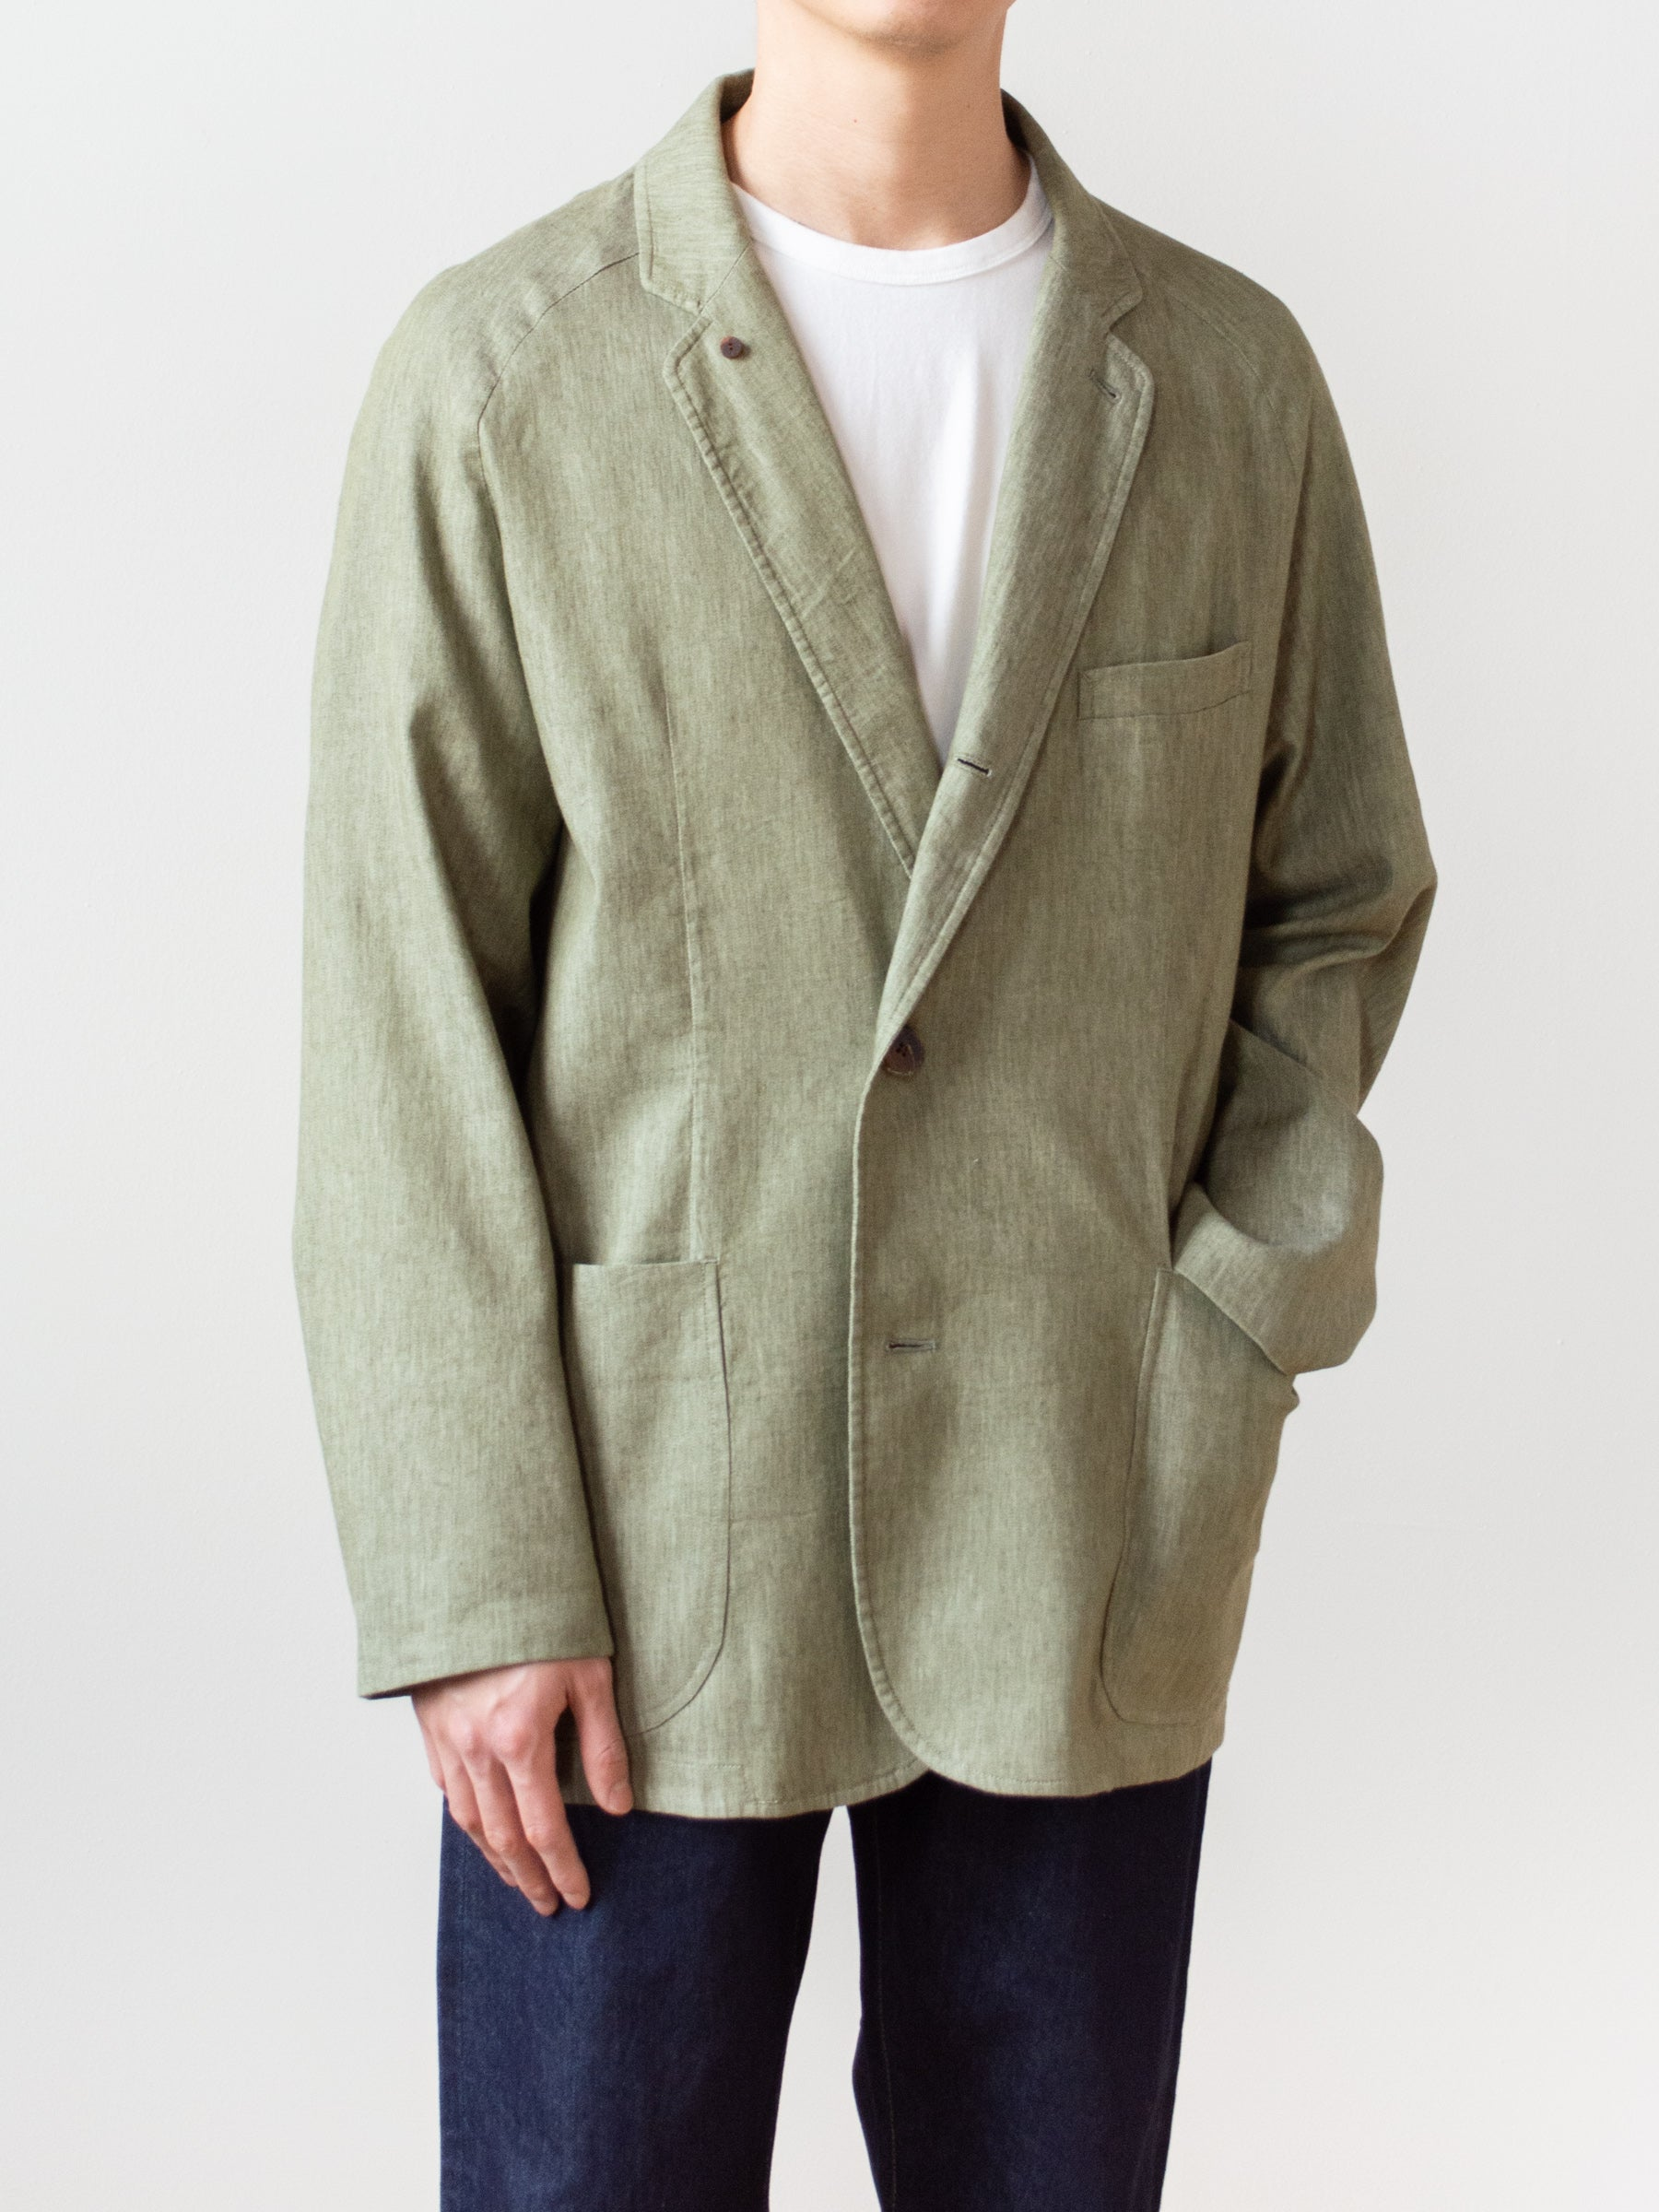 Co/Li Stretch Denim Raglan Jacket - Green